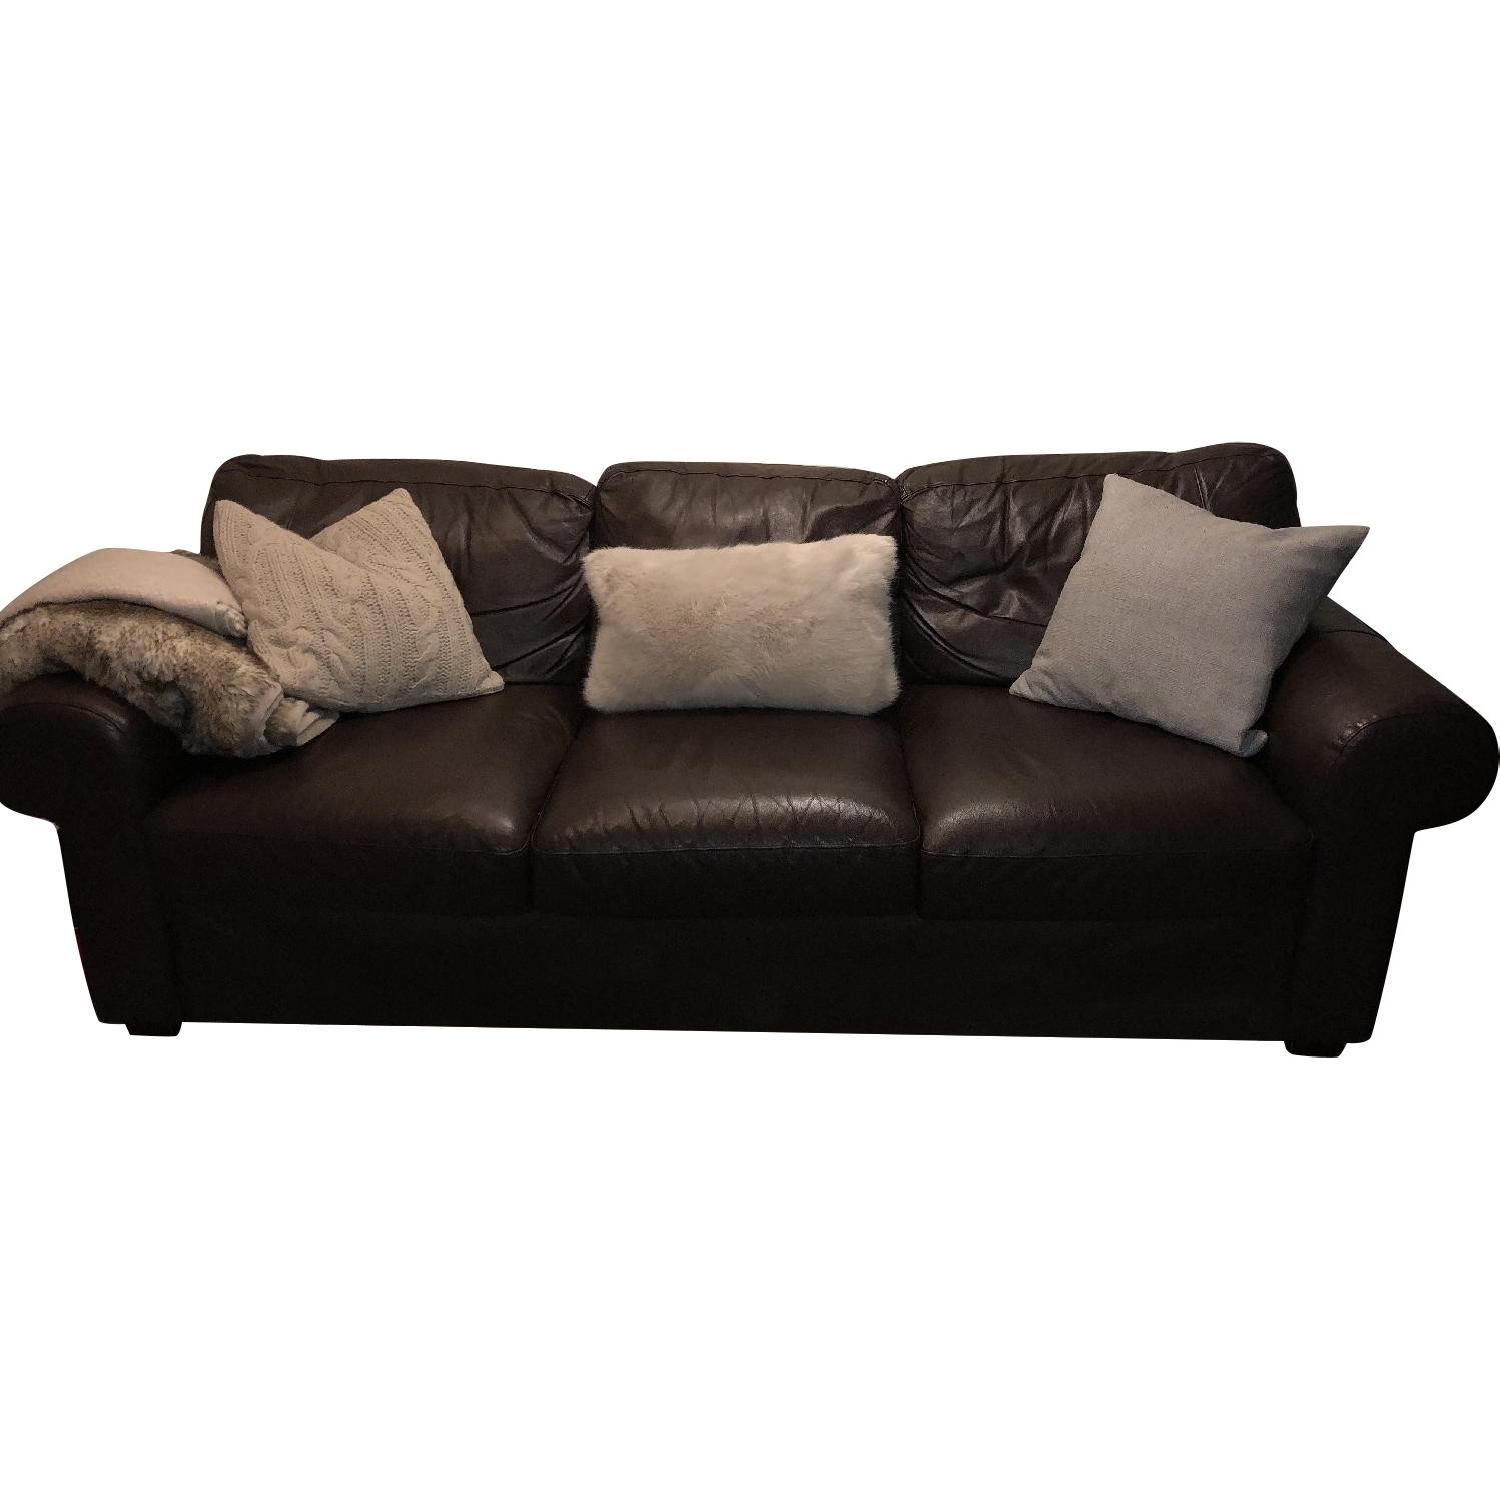 Jennifer Convertibles Brown Leather Sofa ...